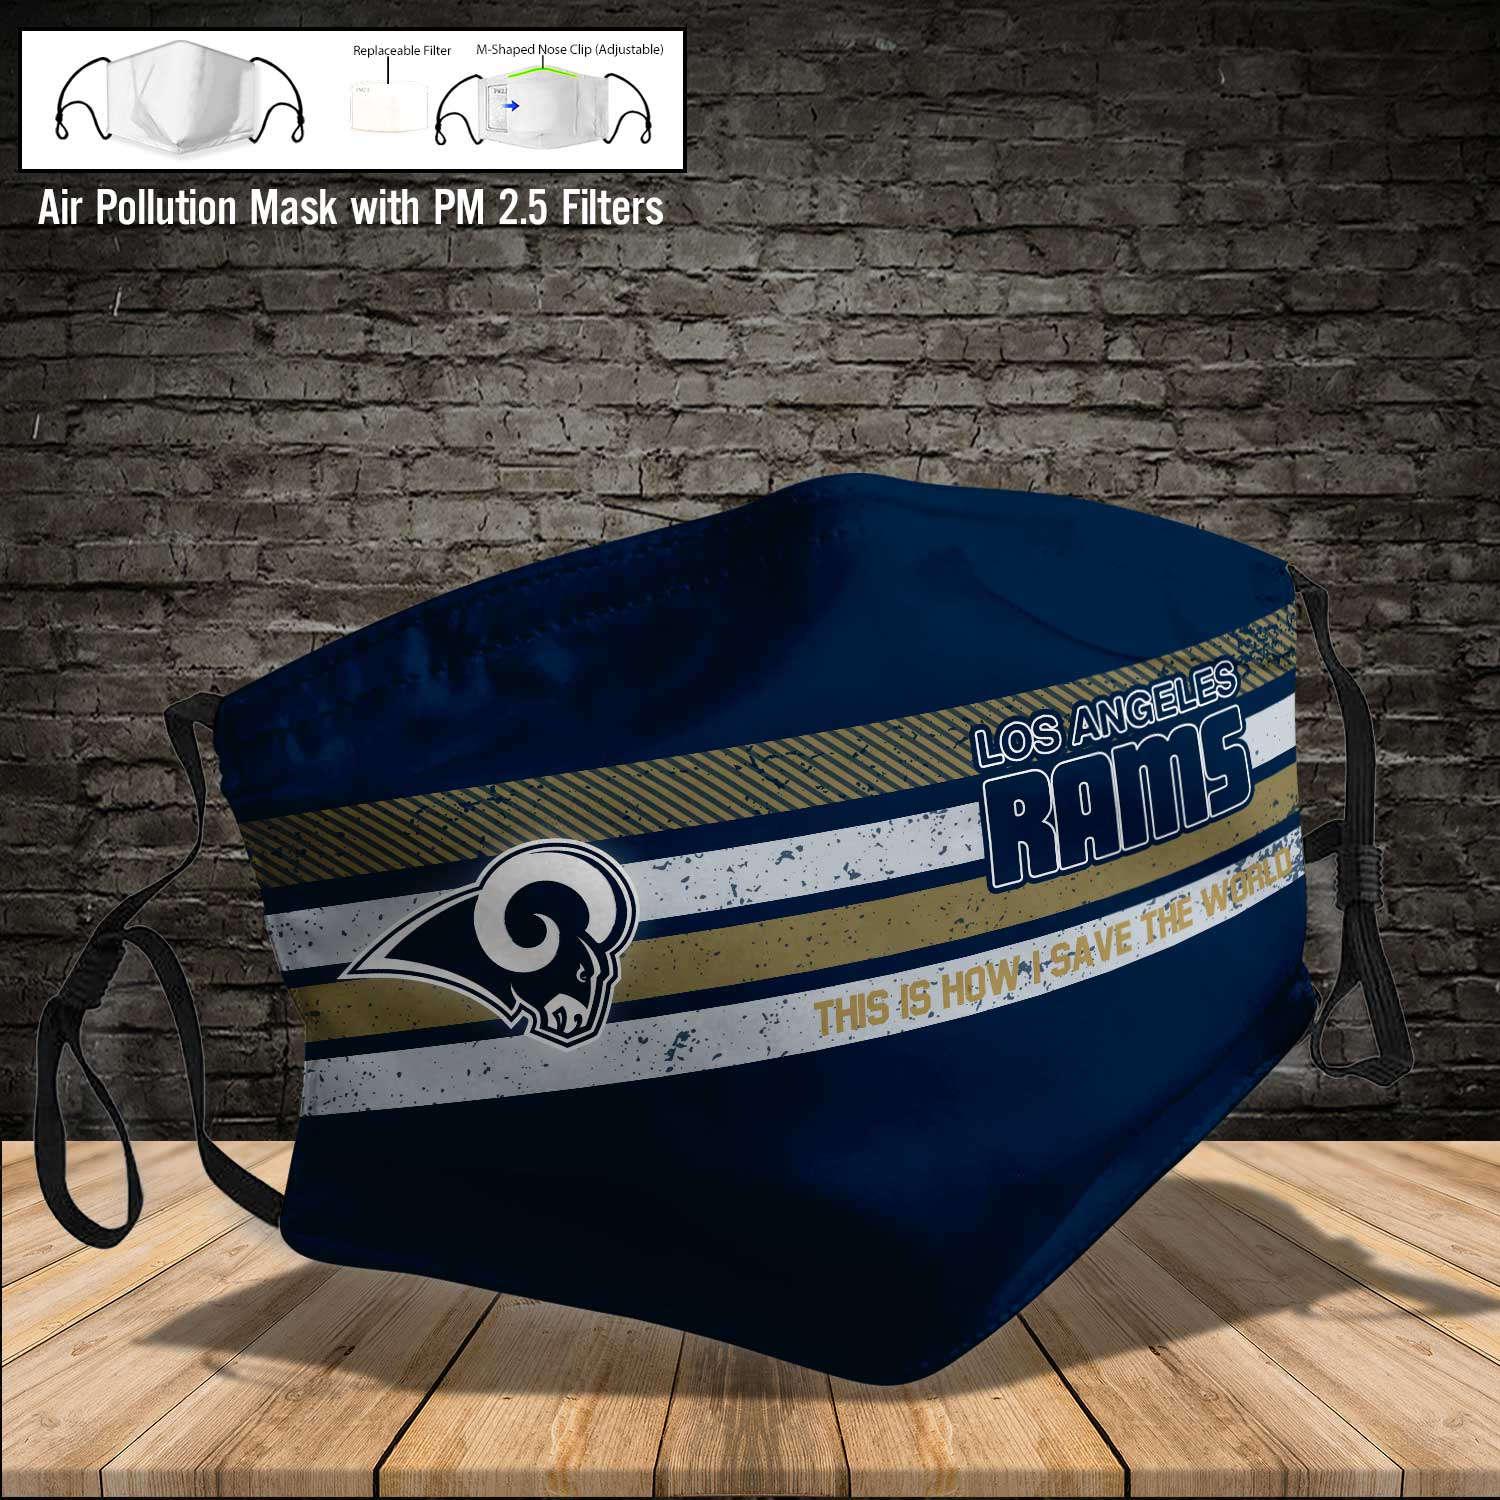 Los angeles rams this is how i save the world full printing face mask 3